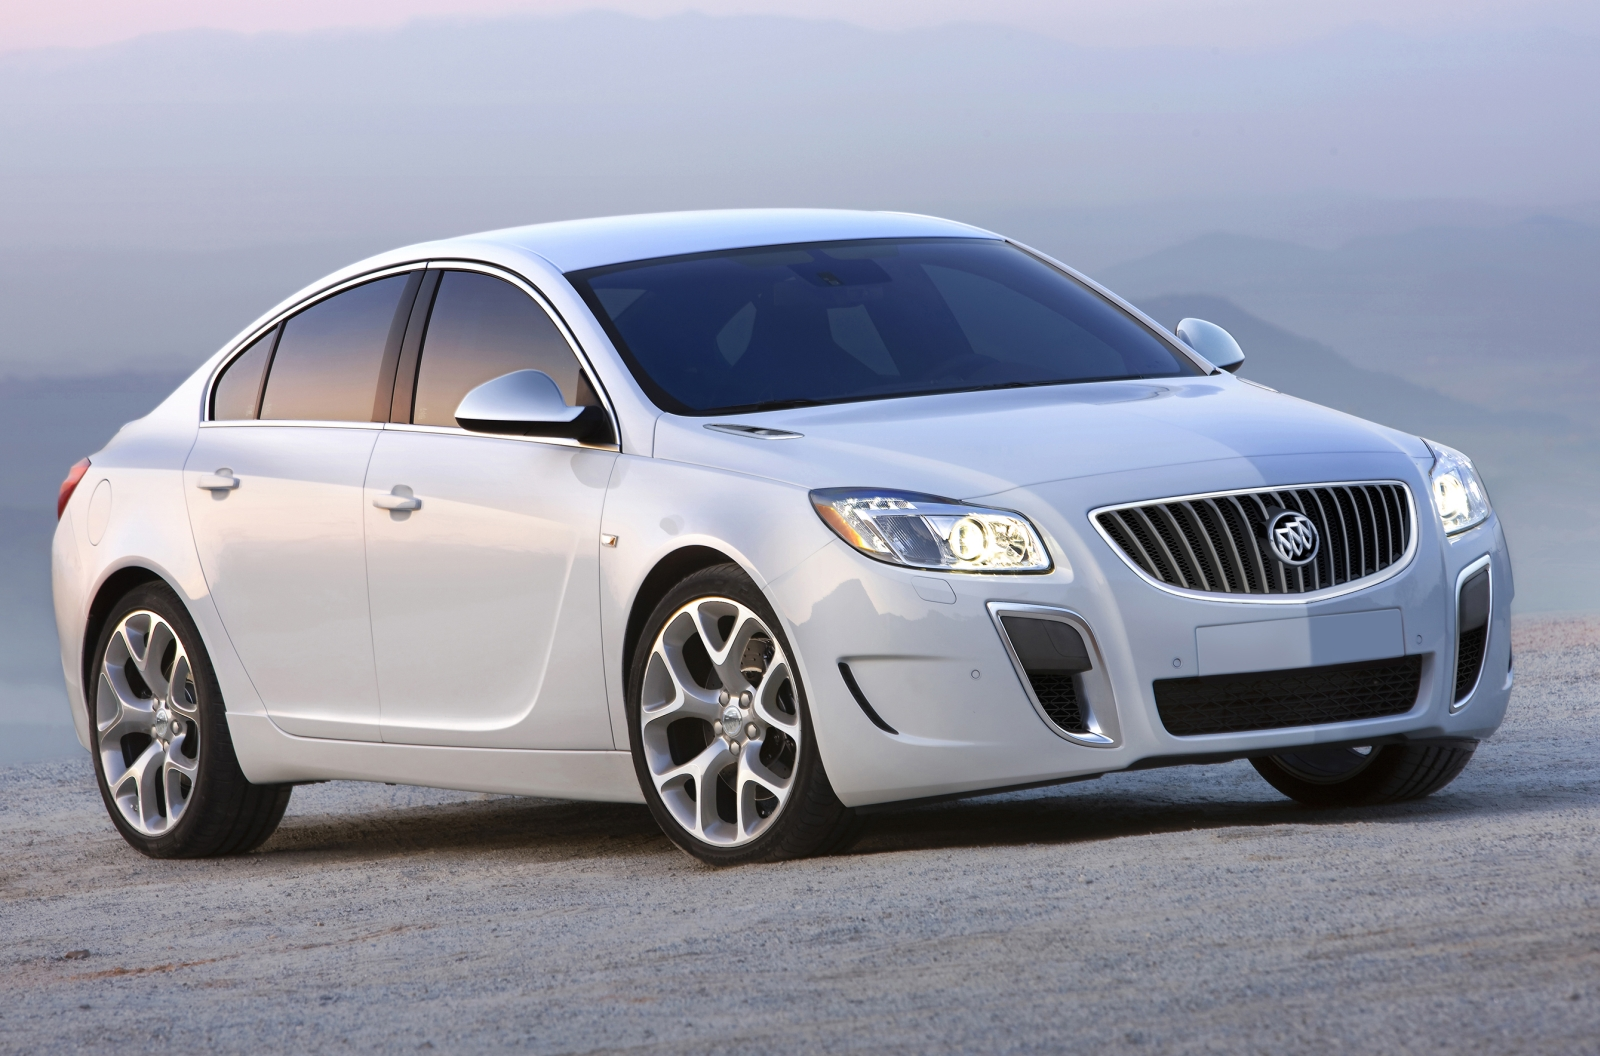 Buick Regal: 05 фото